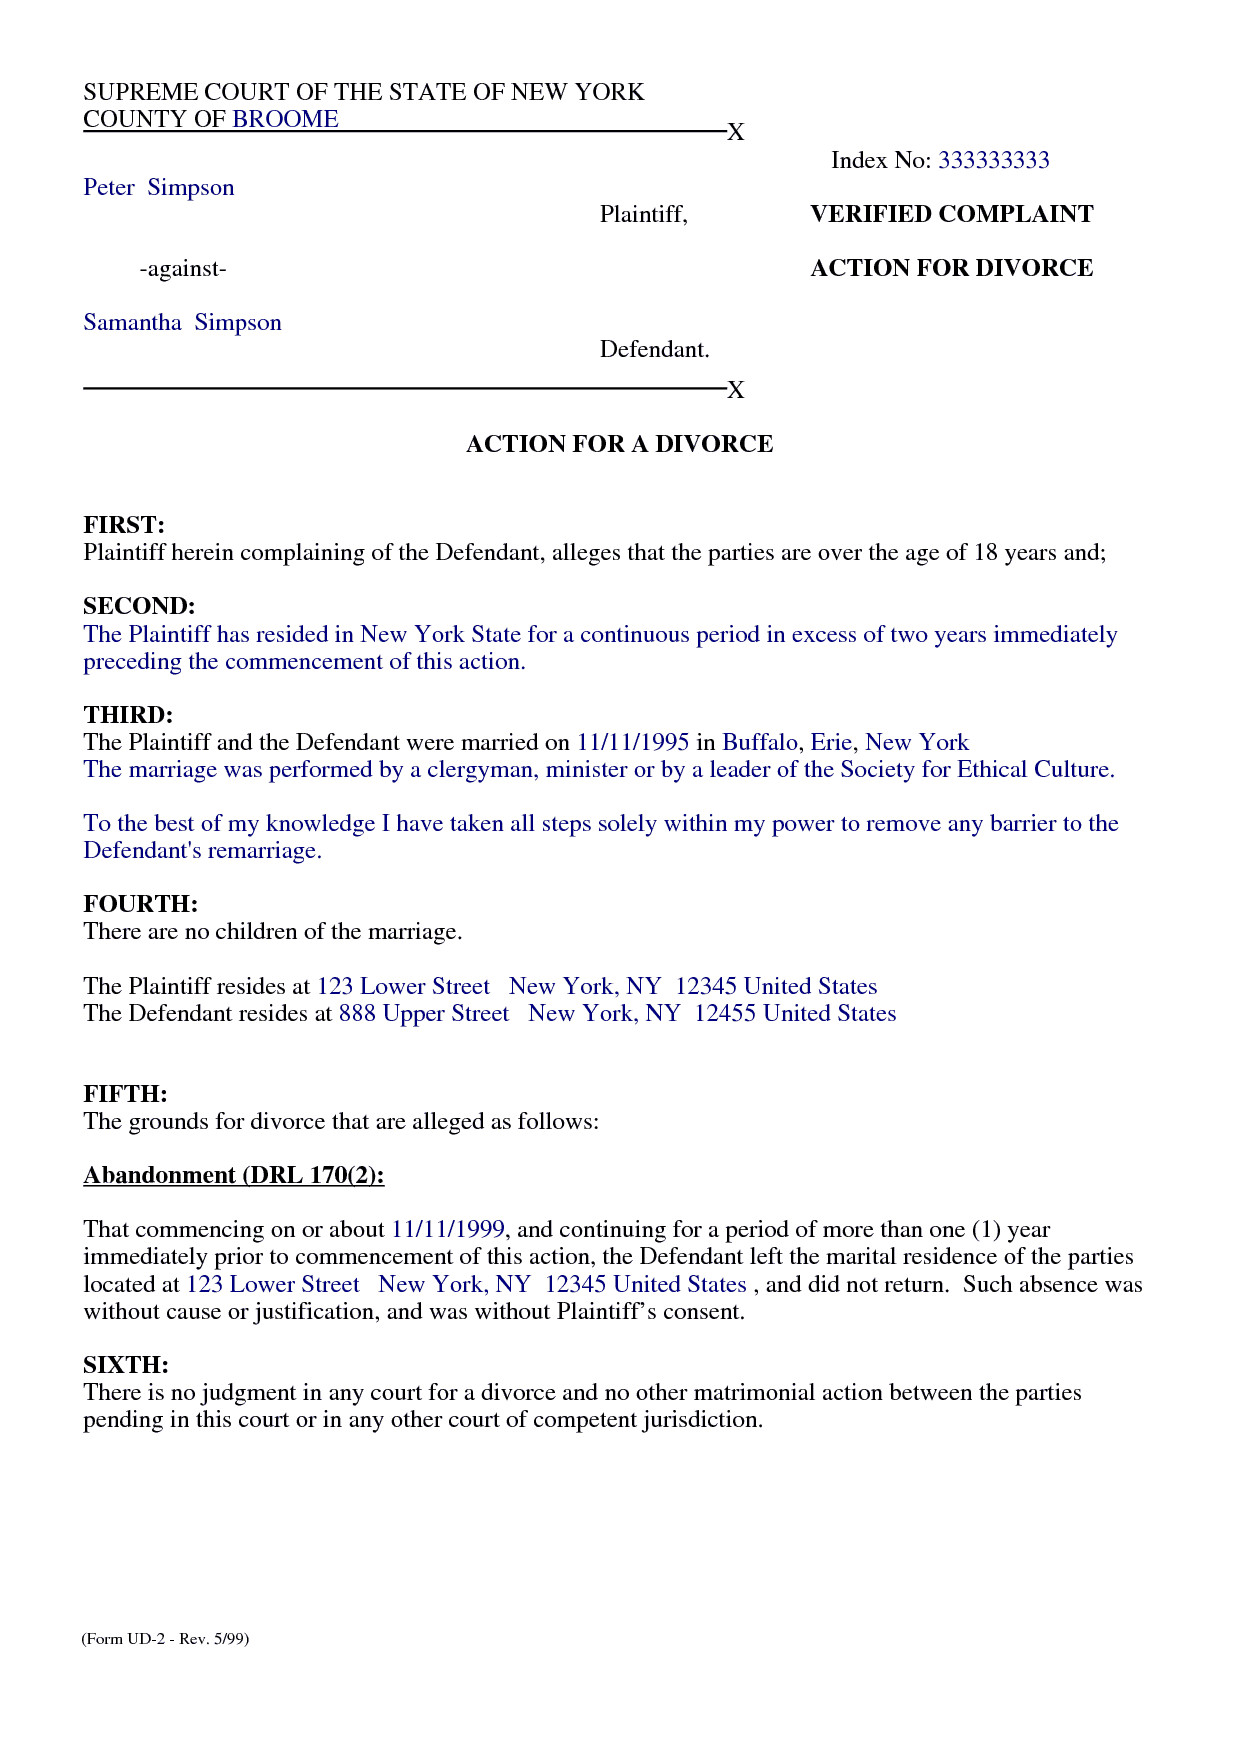 Separation Agreement Template Word top 5 Free formats Of Separation Agreement Templates